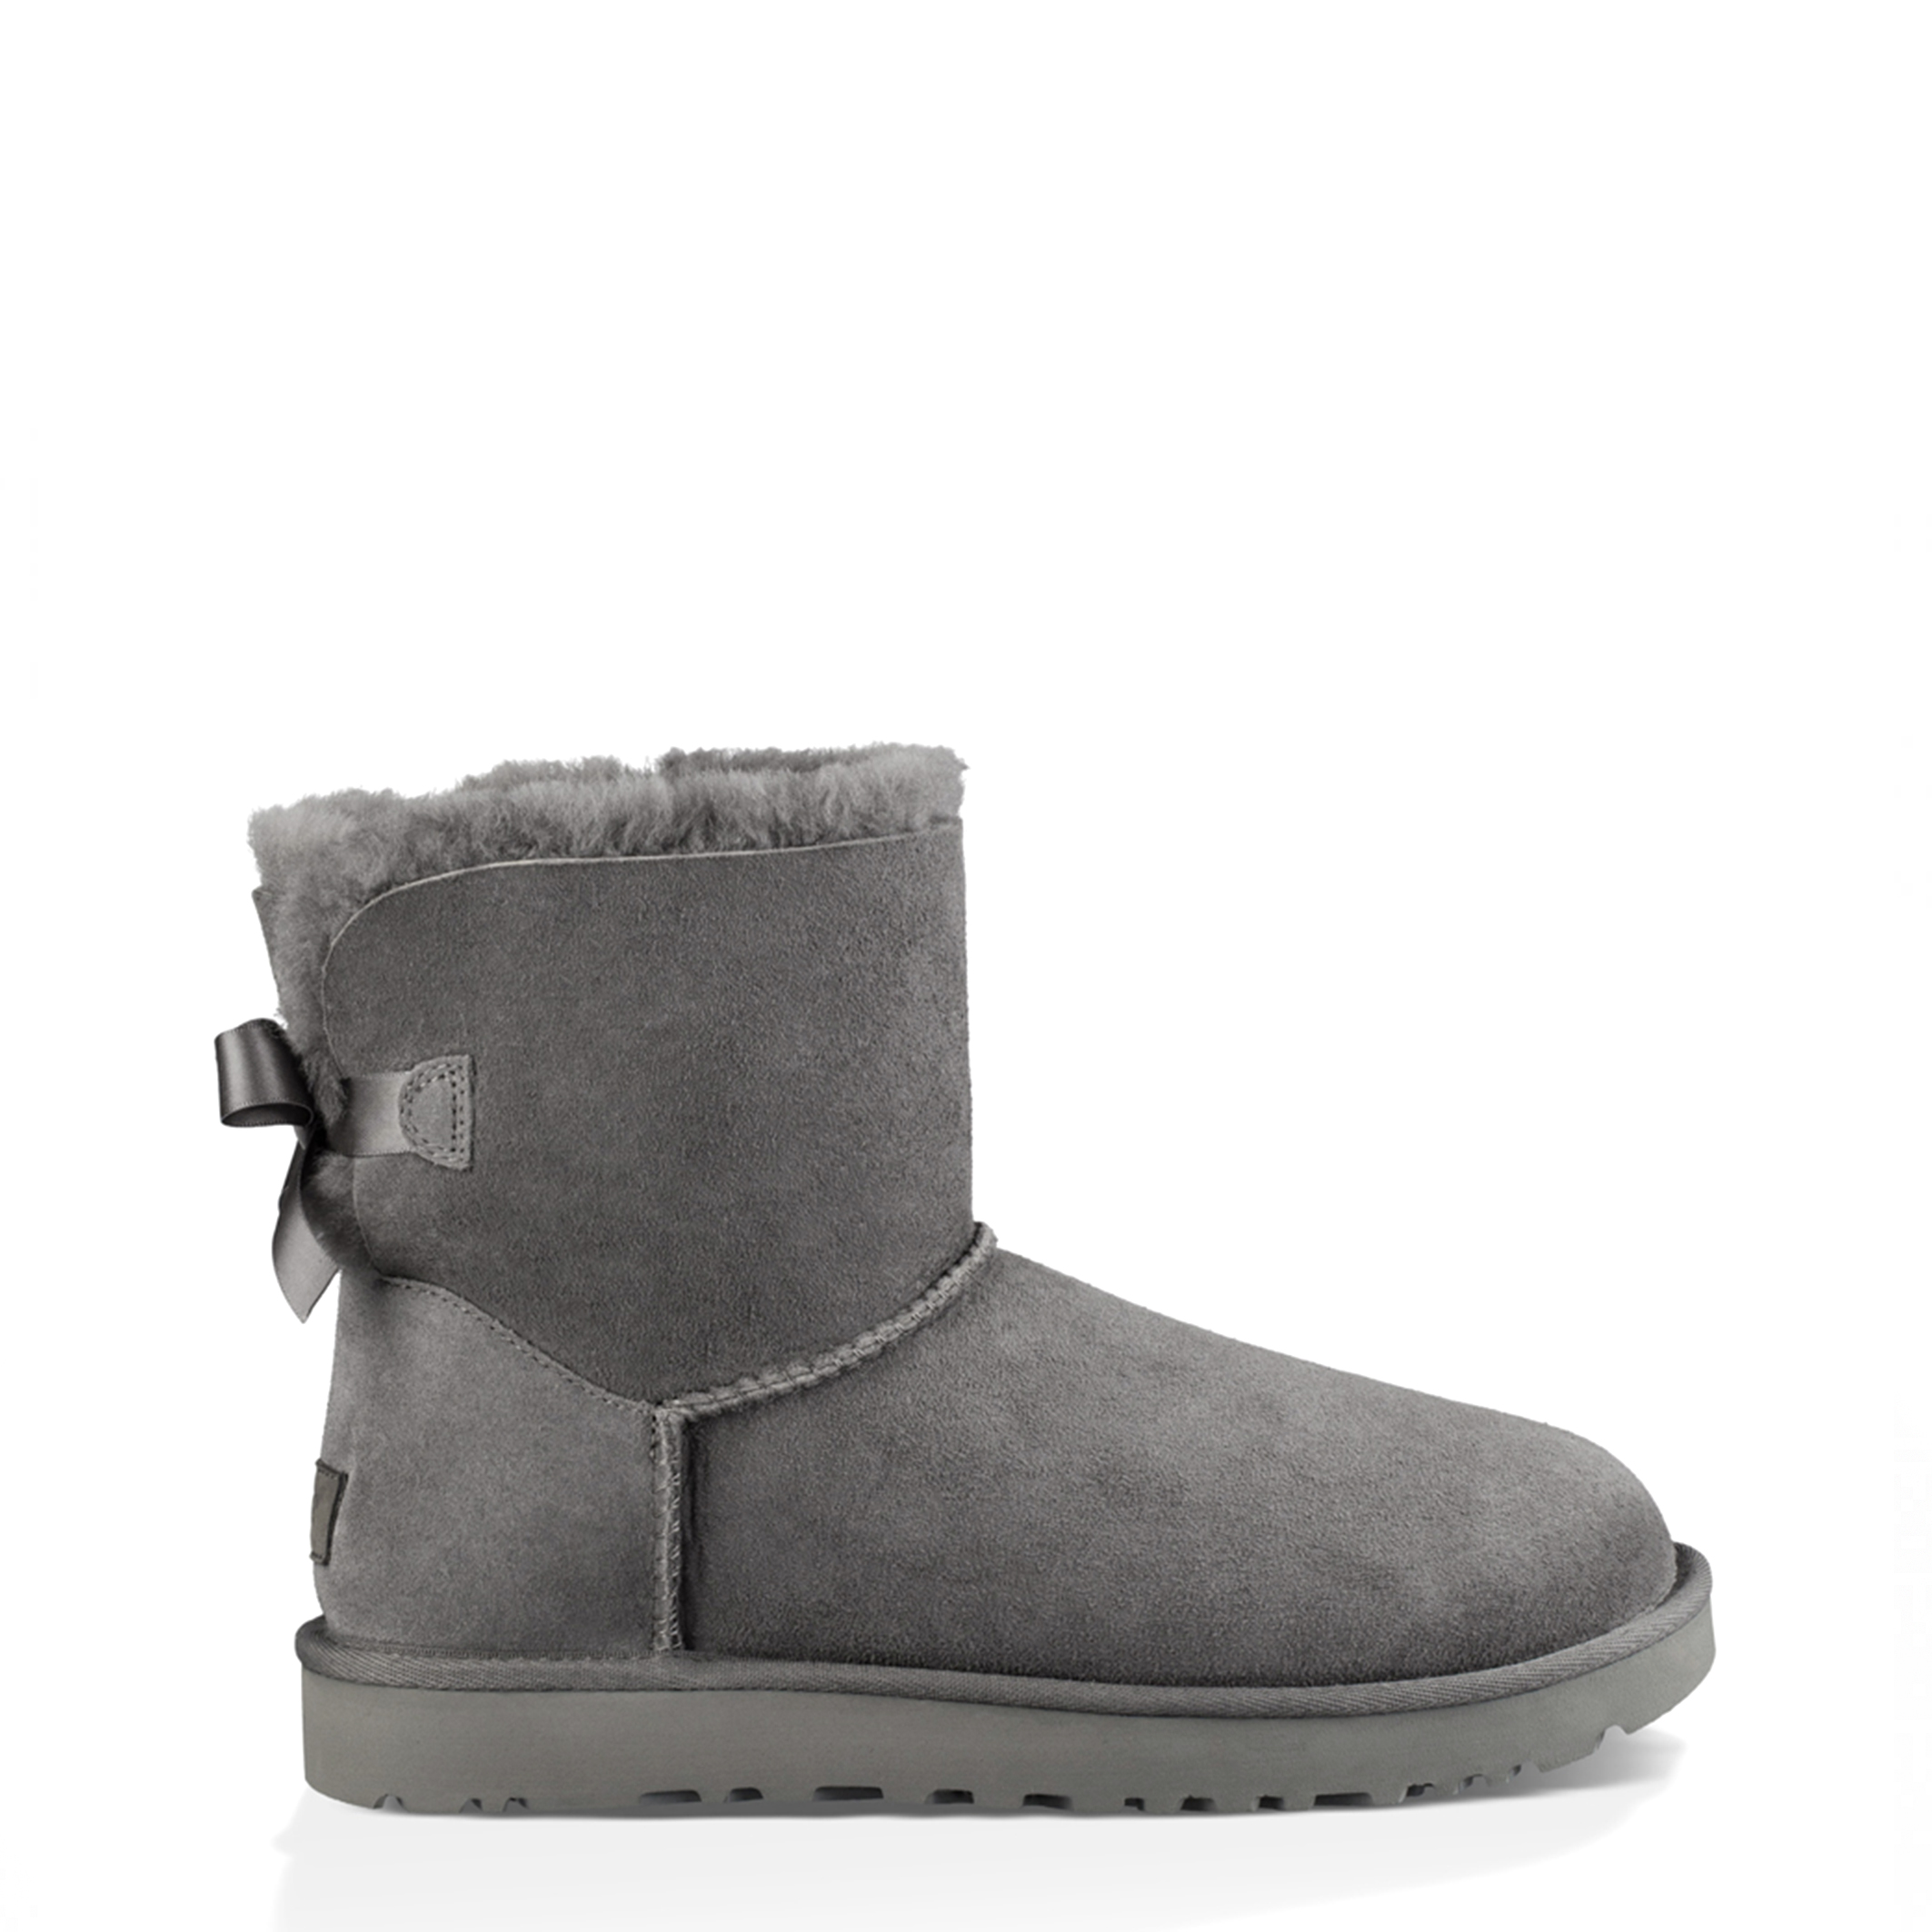 Bottines UGG à Noeuds Mini Gris